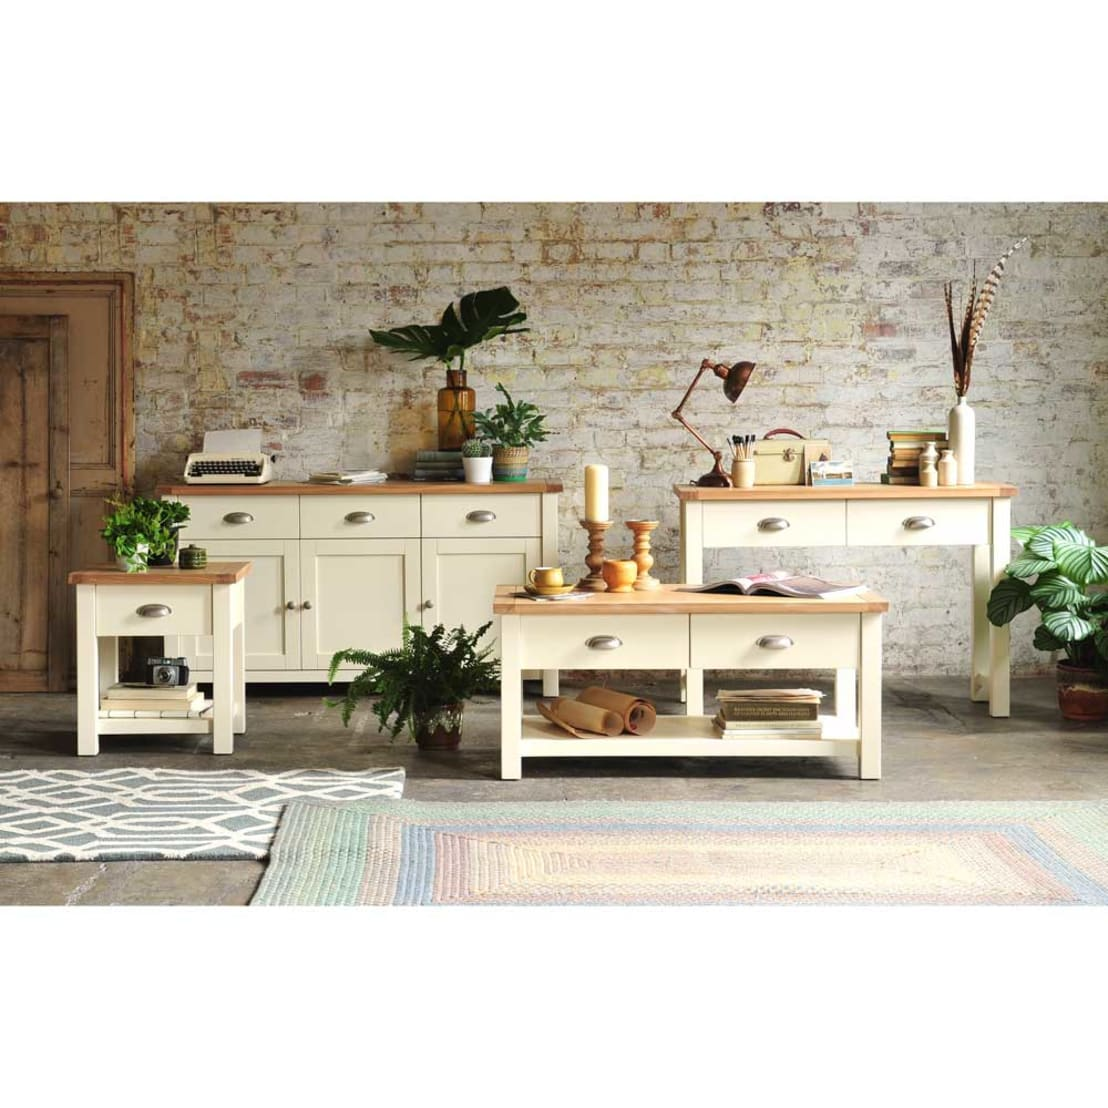 The Cotswold Country Kitchen Company